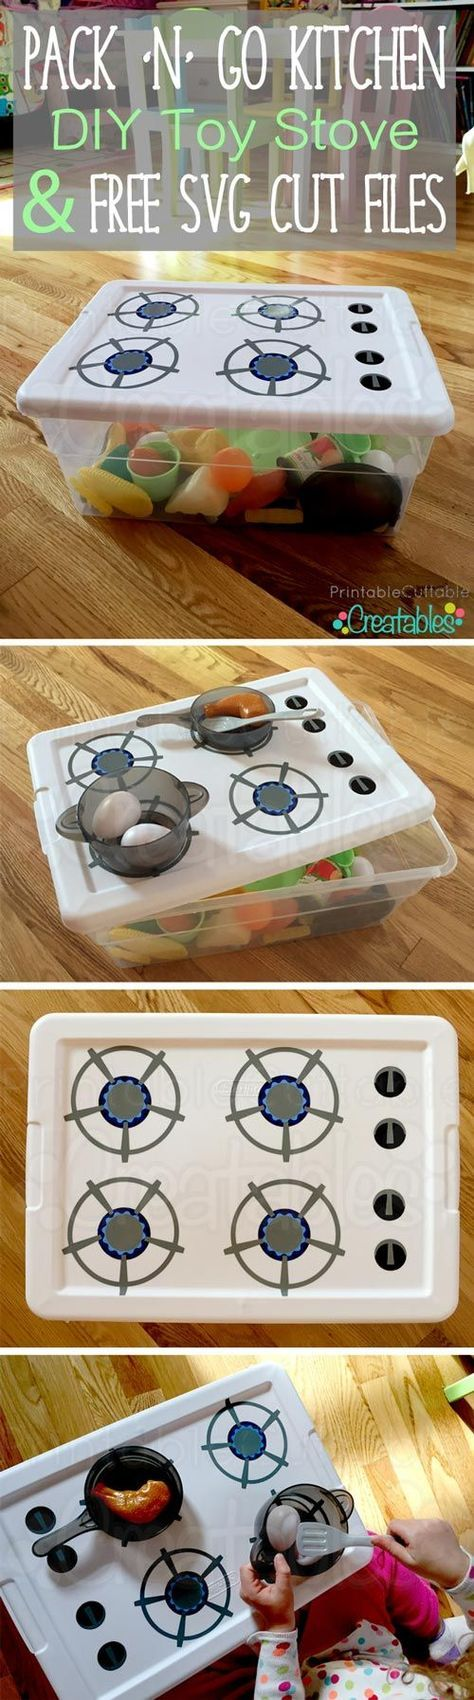 Pack 'N' Go Kitchen - DIY Toy Stove made with Silhouette Cameo - Tutorial + FREE SVG and Studio Cut Files!